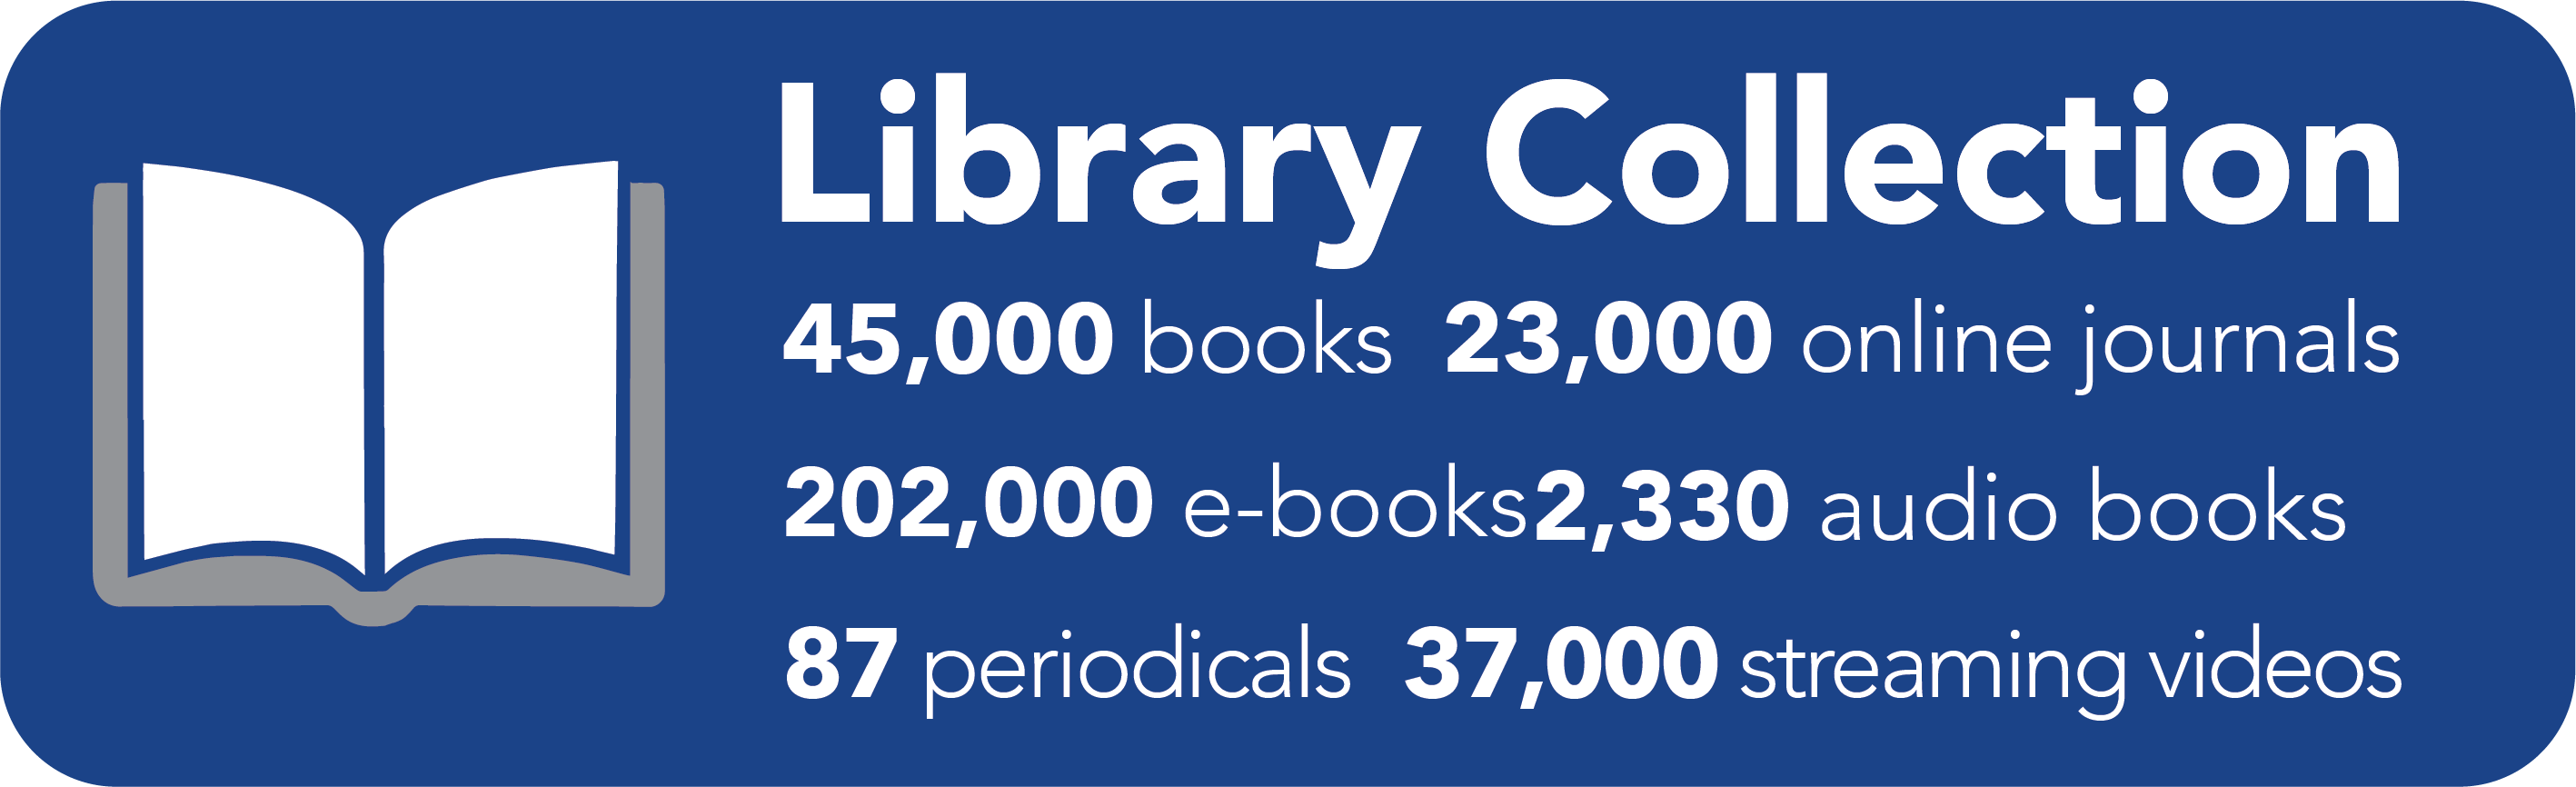 Library Collection Numbers